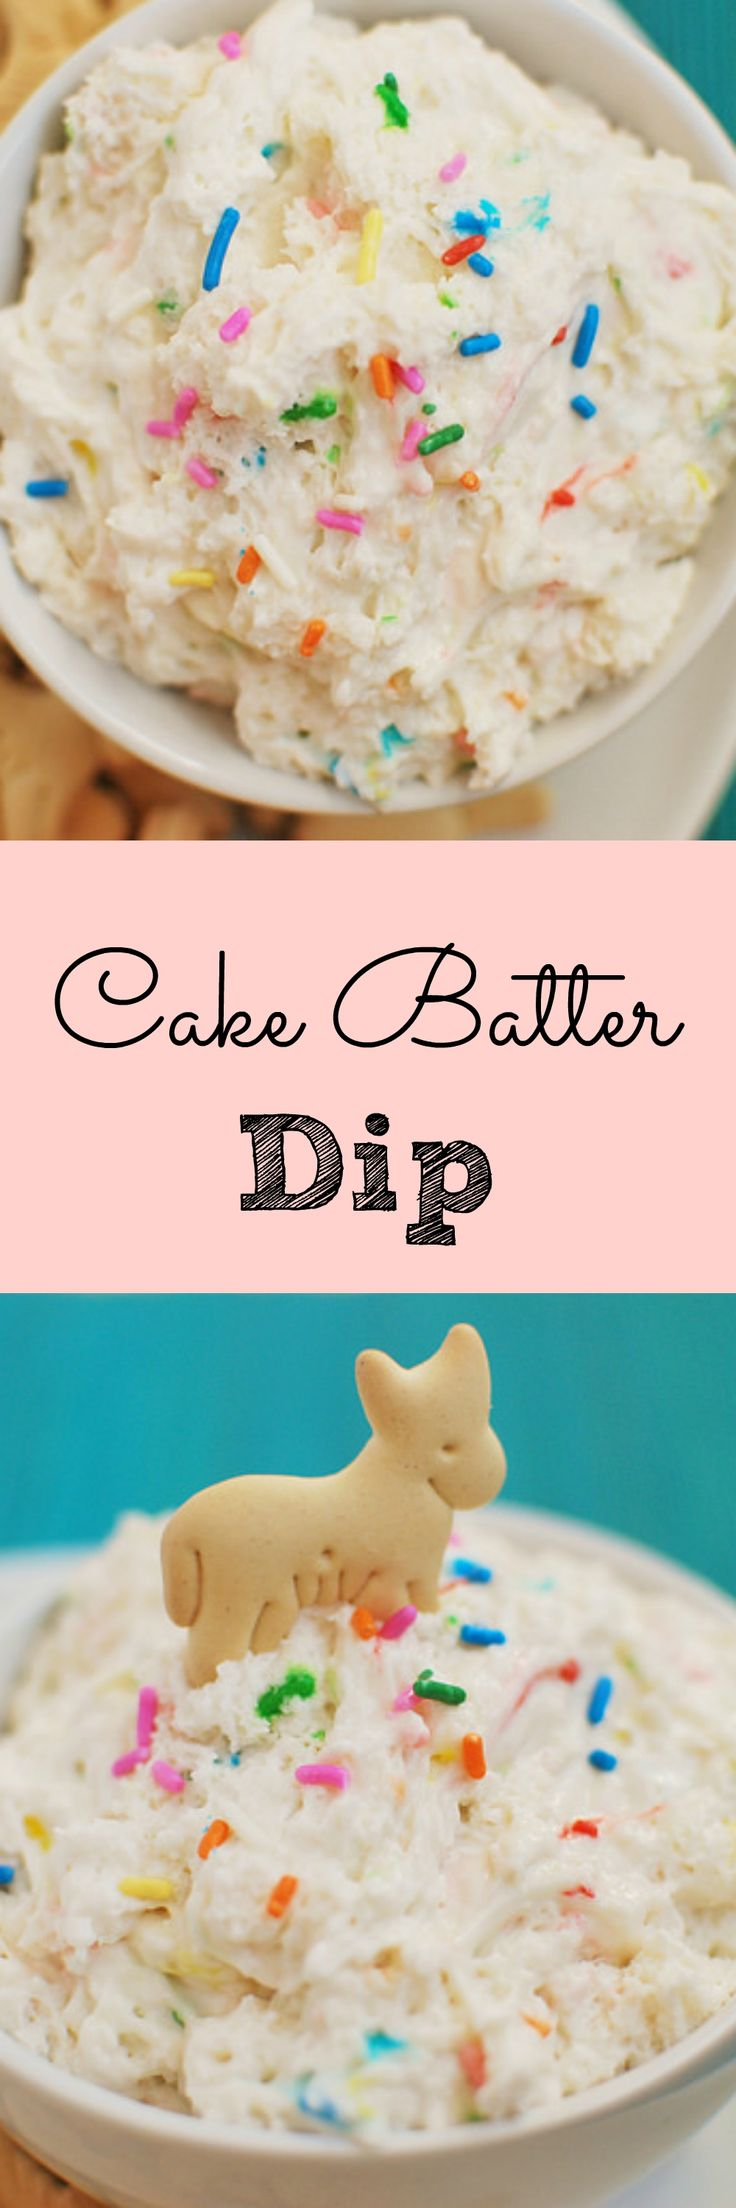 Cake Batter Dip - your new favorite dessert dip!